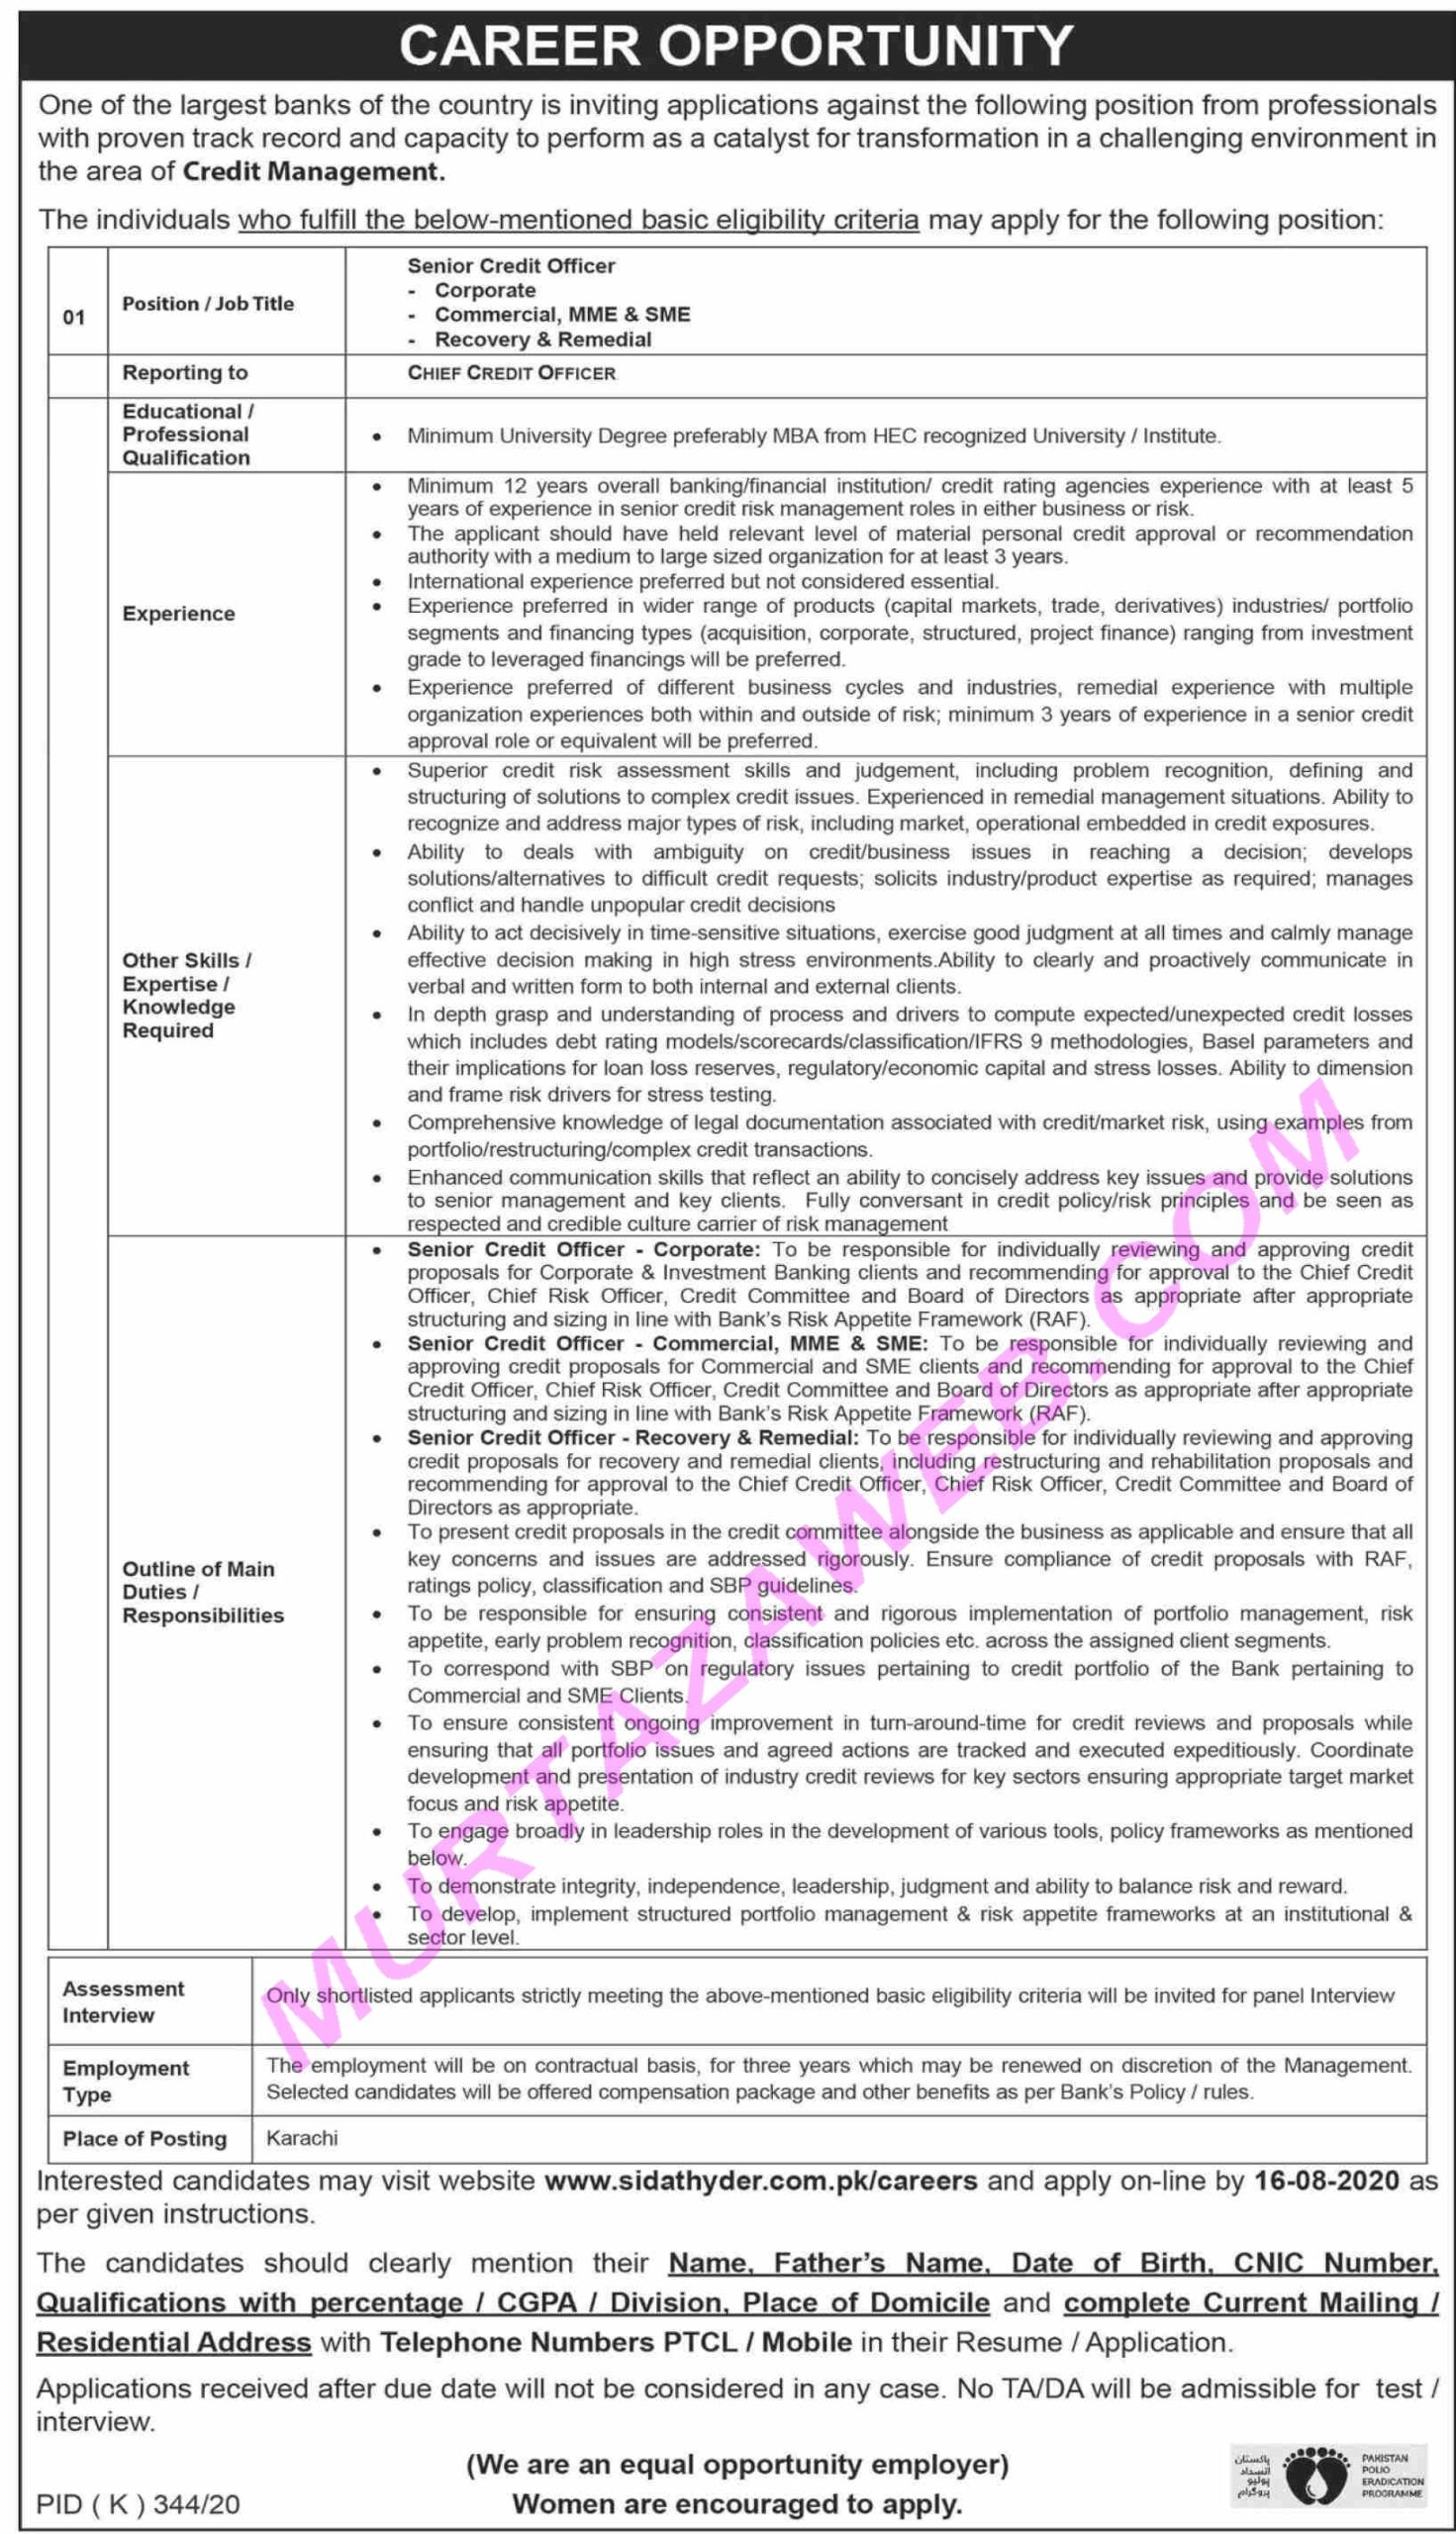 Largest Banks of the Country Senior Credit Officer Jobs 2020 Murtazaweb.com